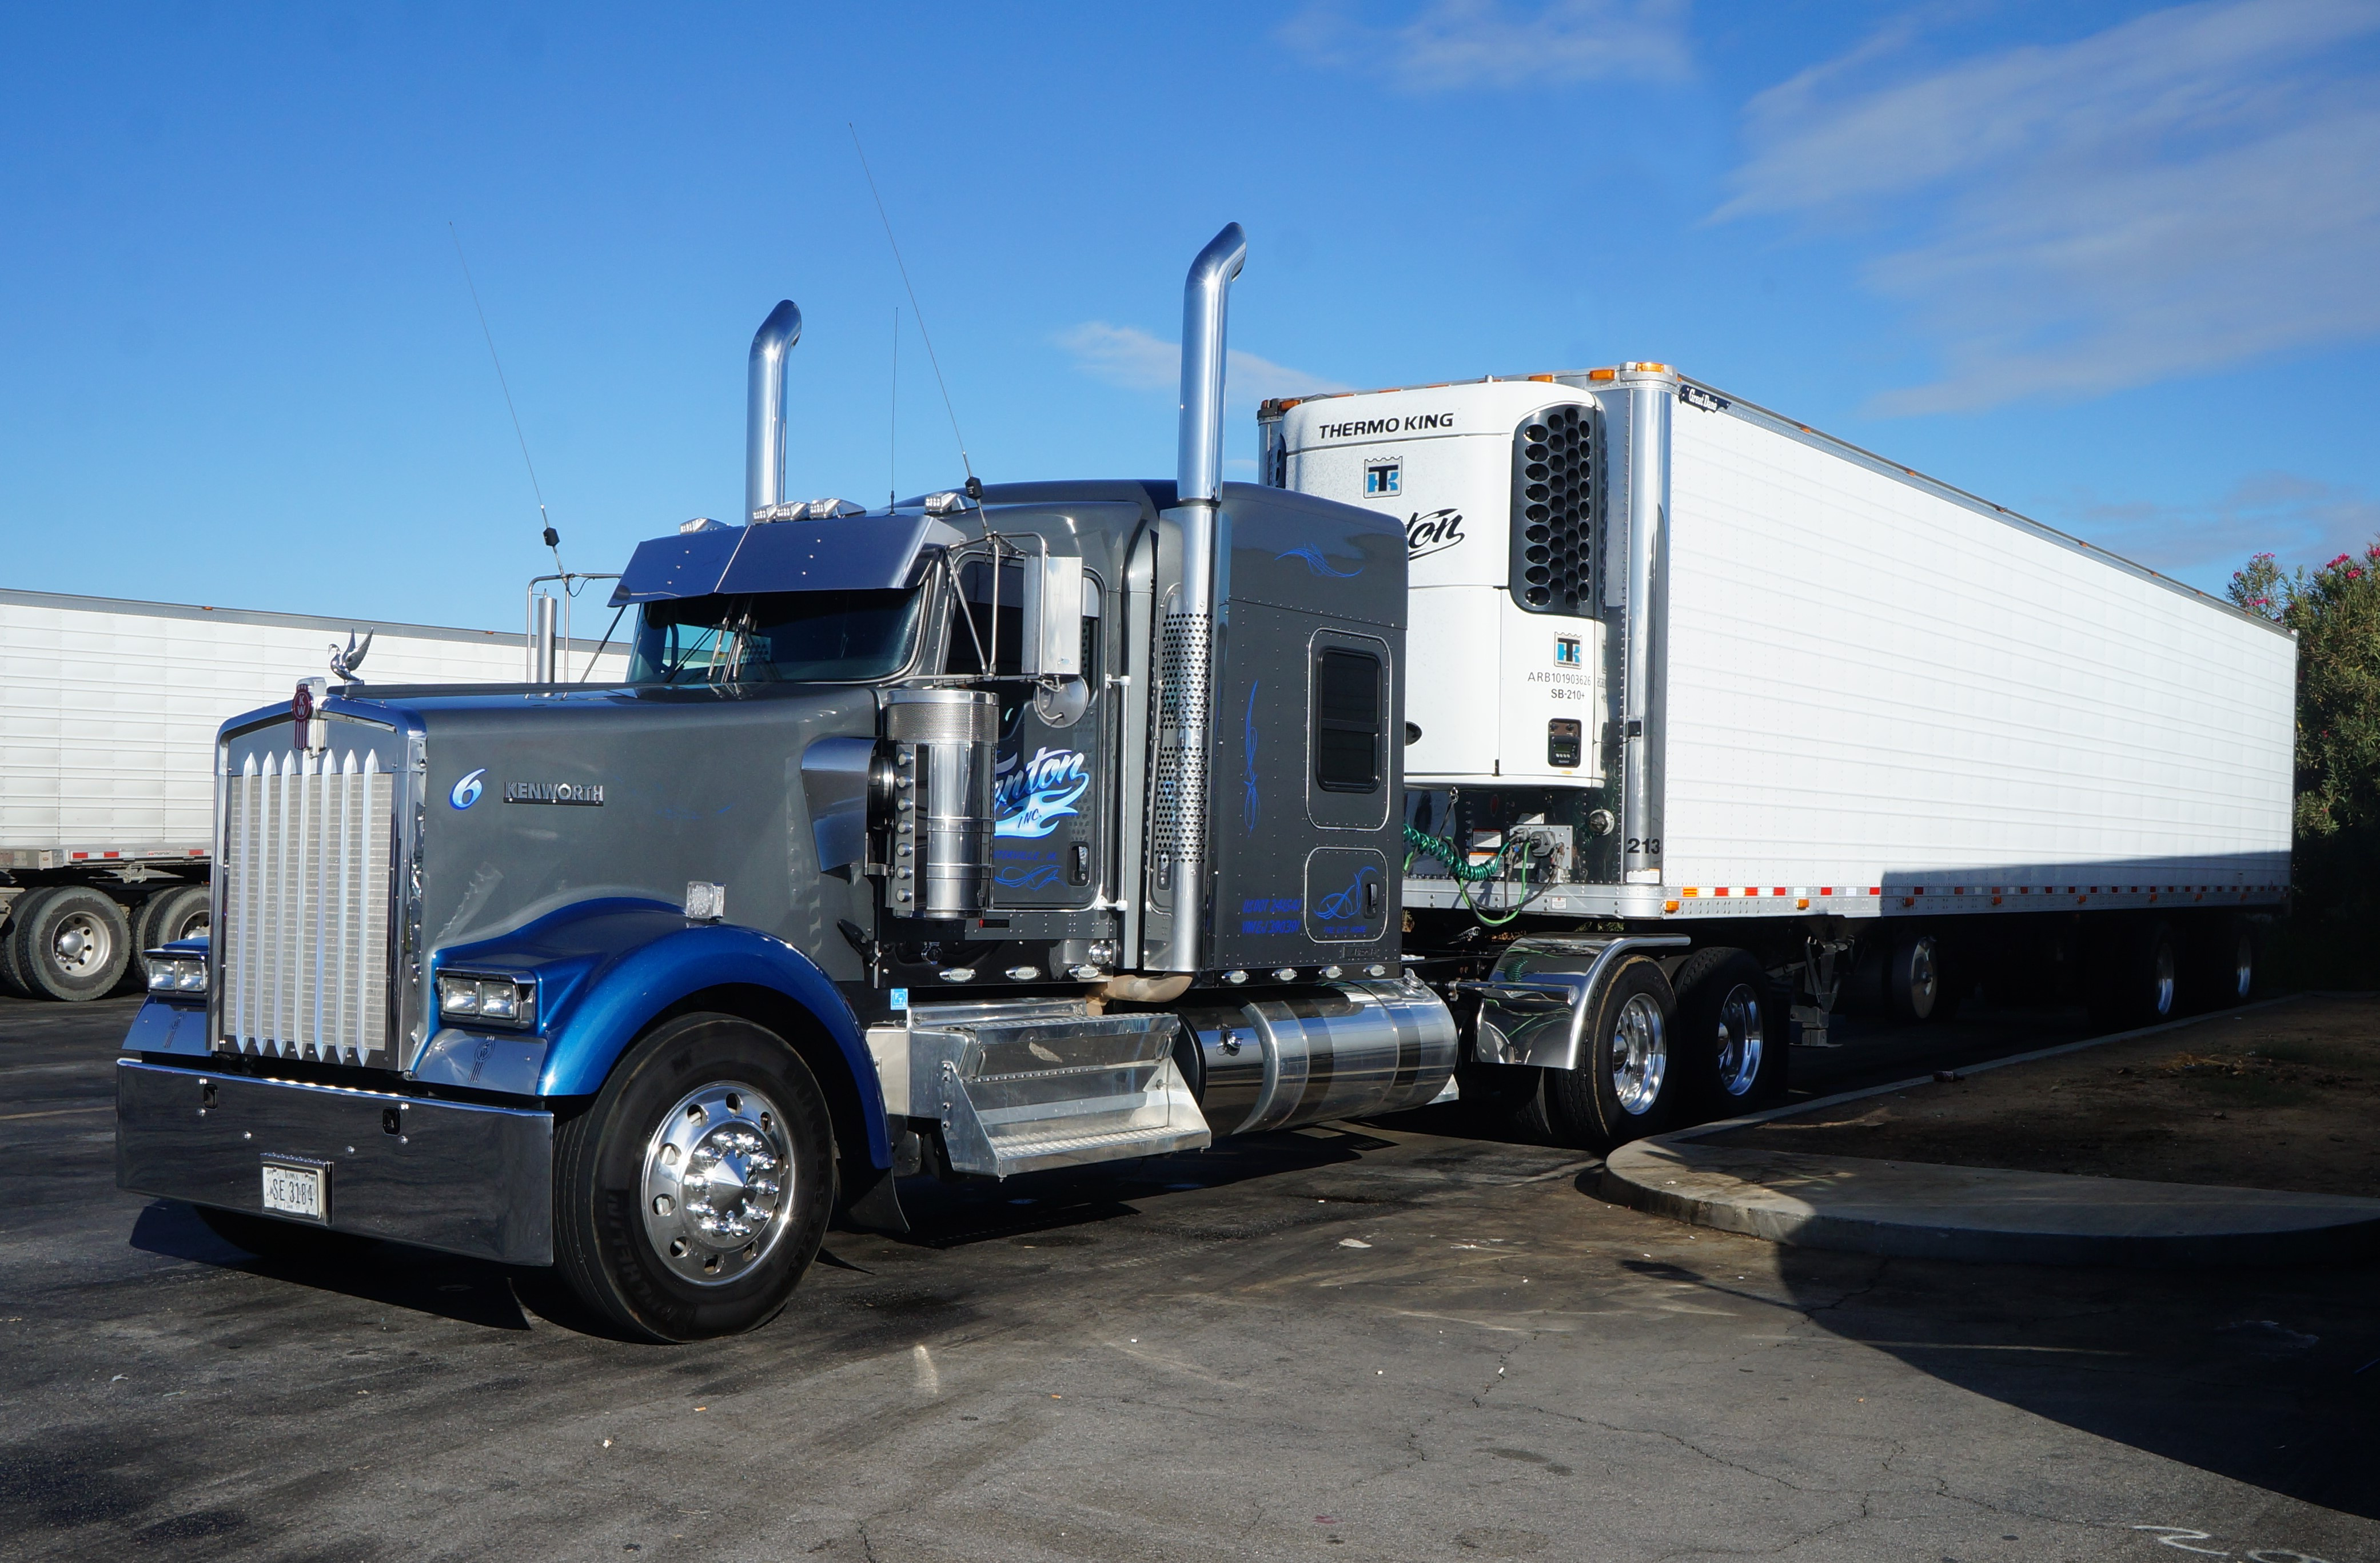 International Trucks 2018 >> File:Bakersfield, (CA) Truck Kenworth at Flying J Travel Plaza (en2016) (10).JPG - Wikimedia Commons